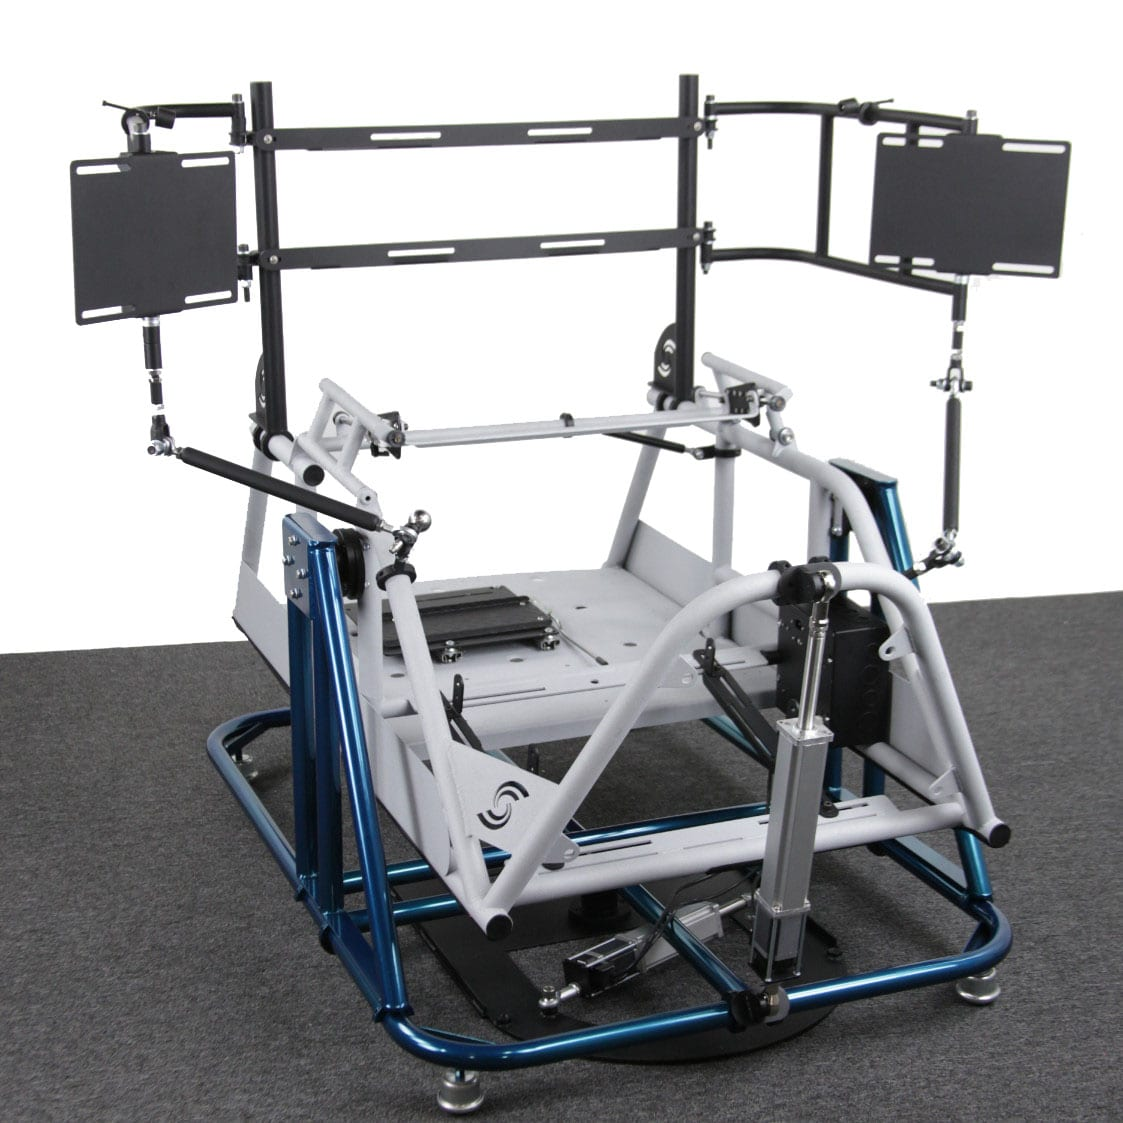 SimRacing Rig, the APEX0 Cockpit for iRacing Simulation